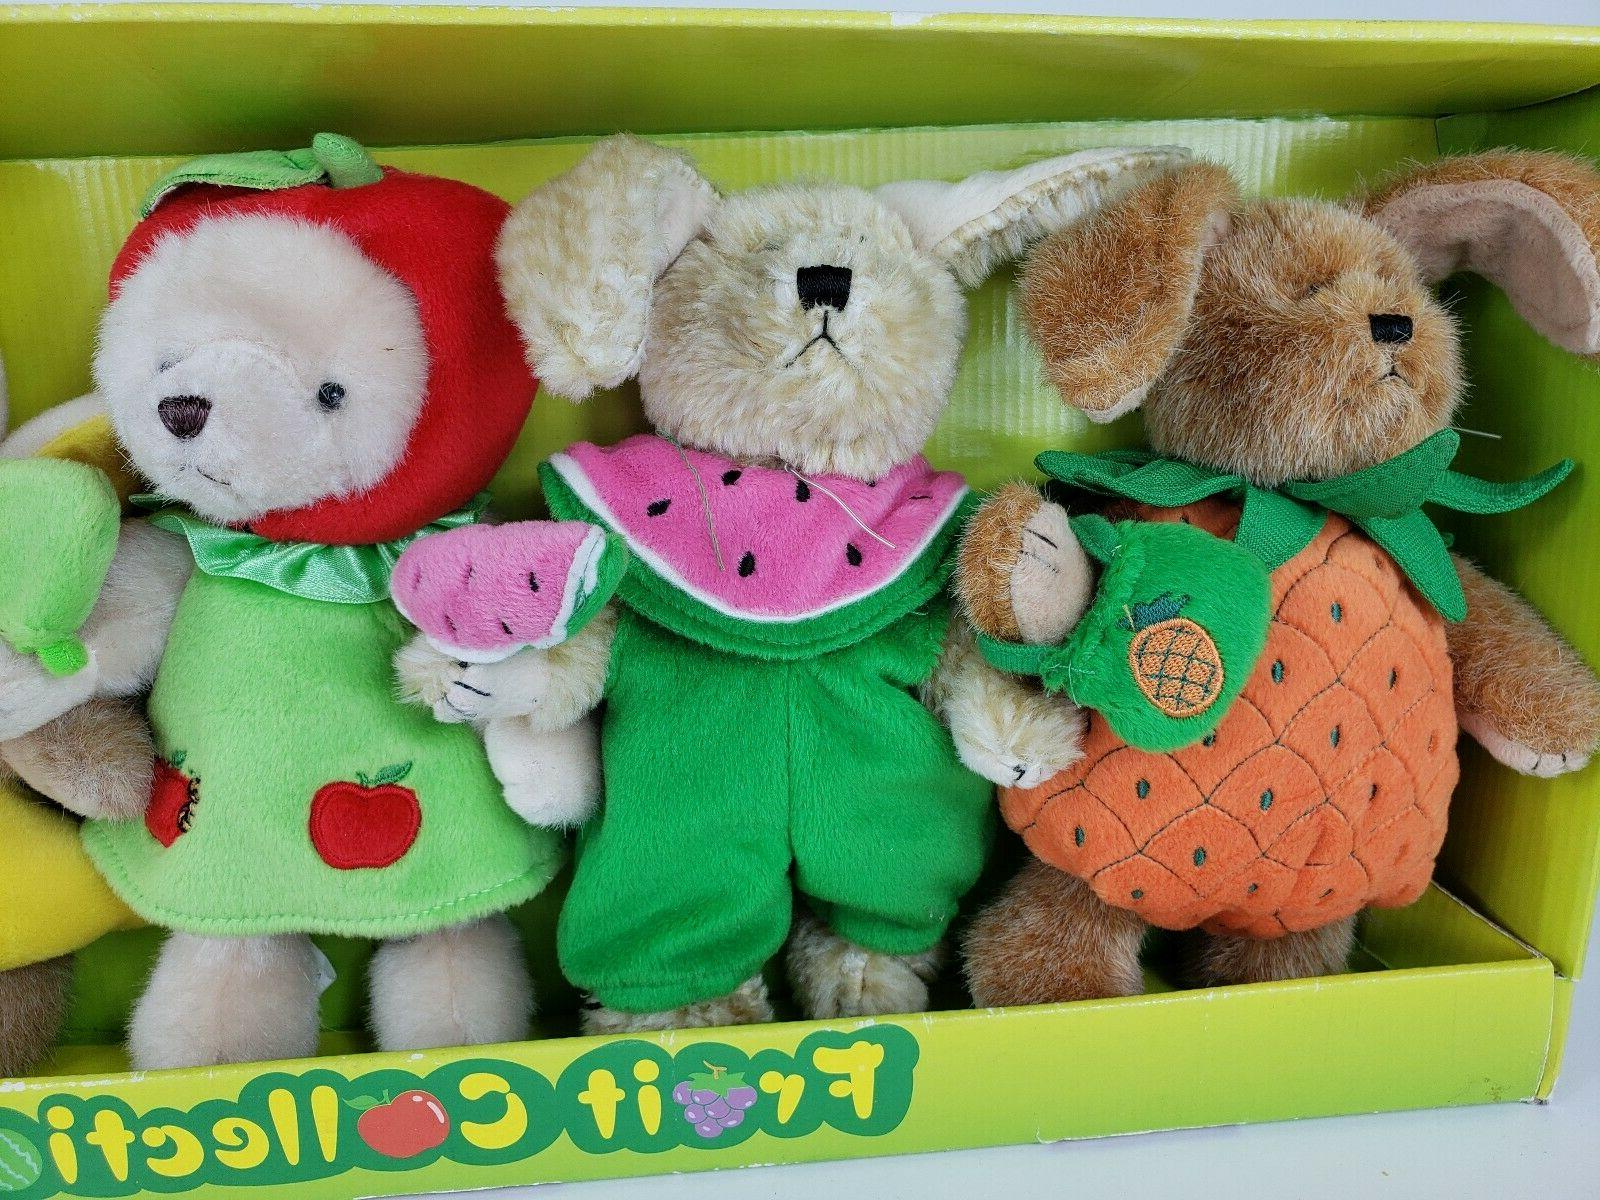 NEW IN BOX collection scented bears stuffed animals